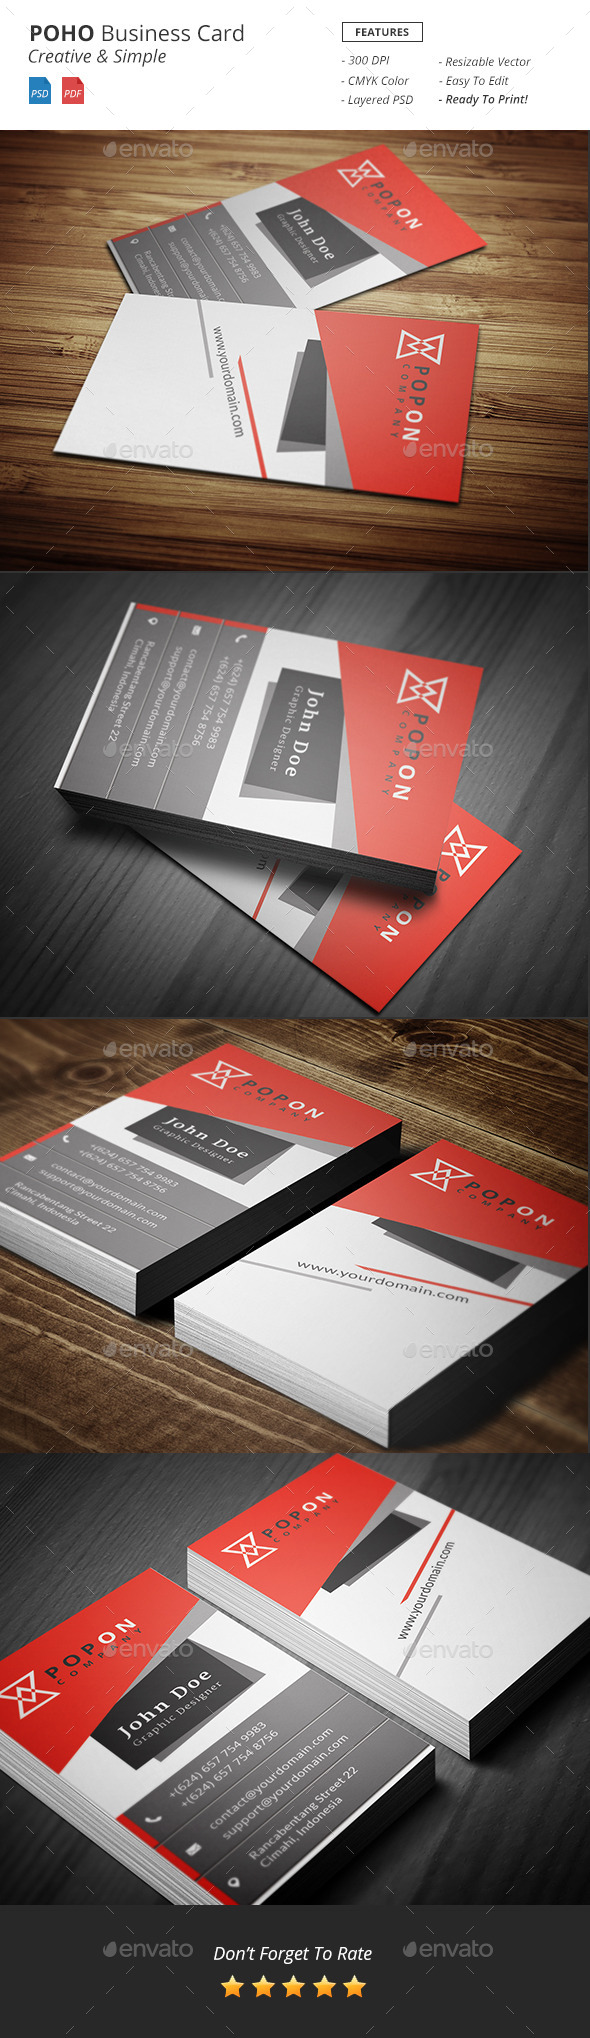 GraphicRiver Poho Bussiness Card Template 10617326